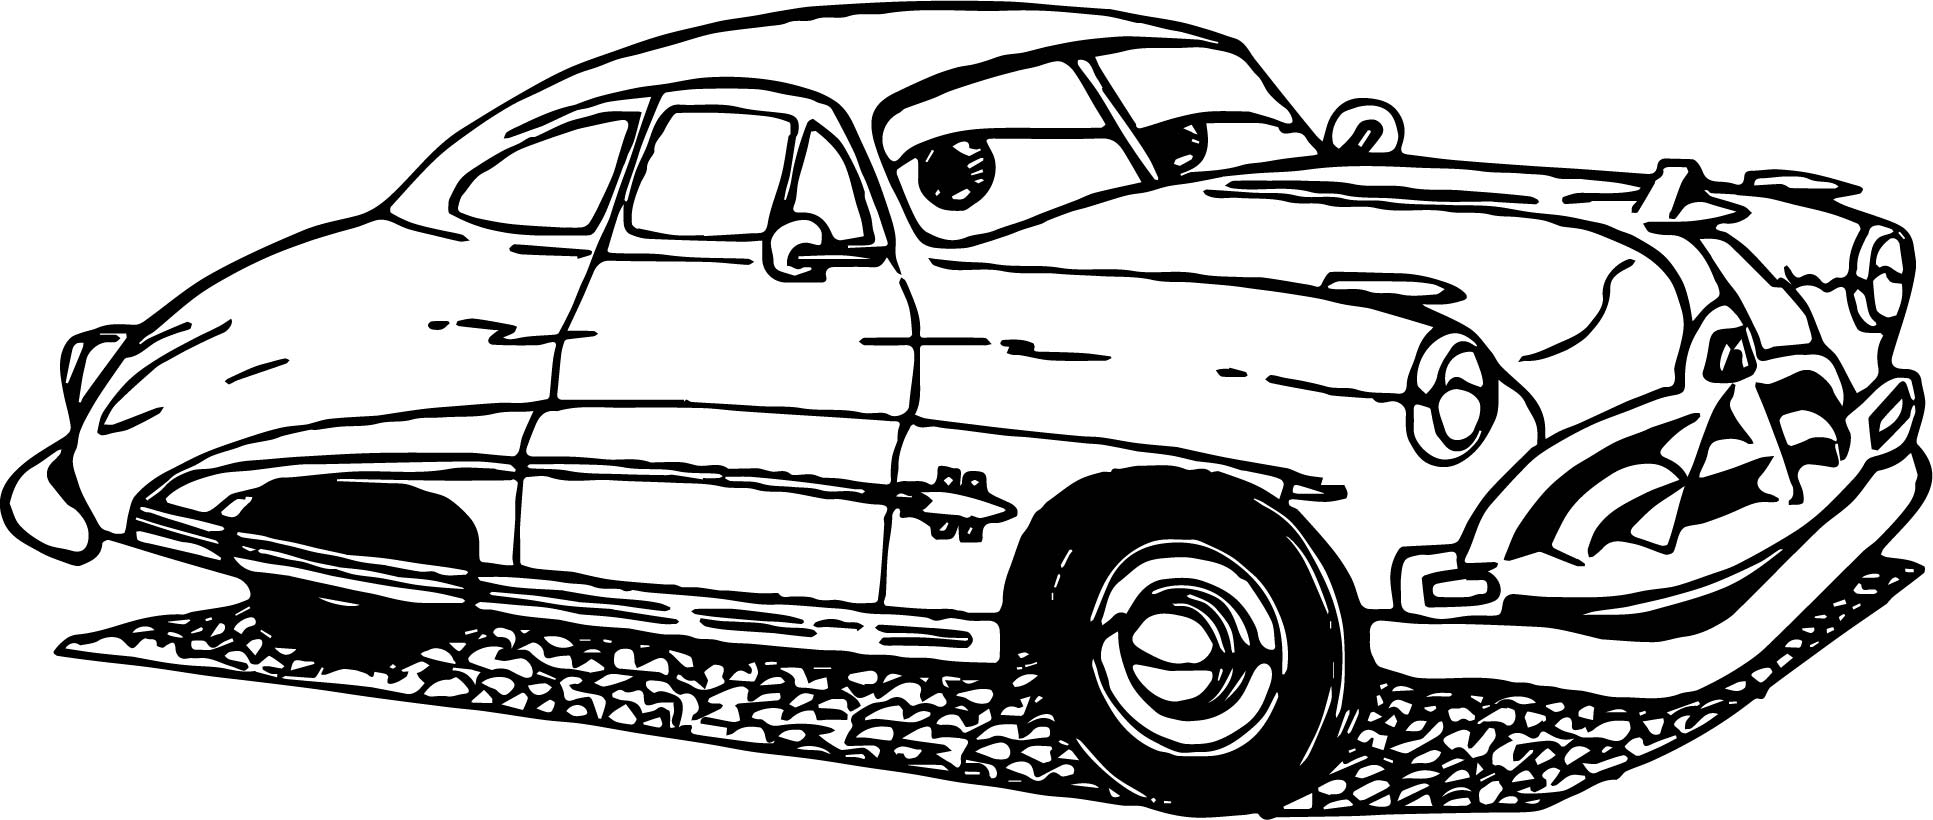 Antique cars coloring pages - Old Cars Coloring Page